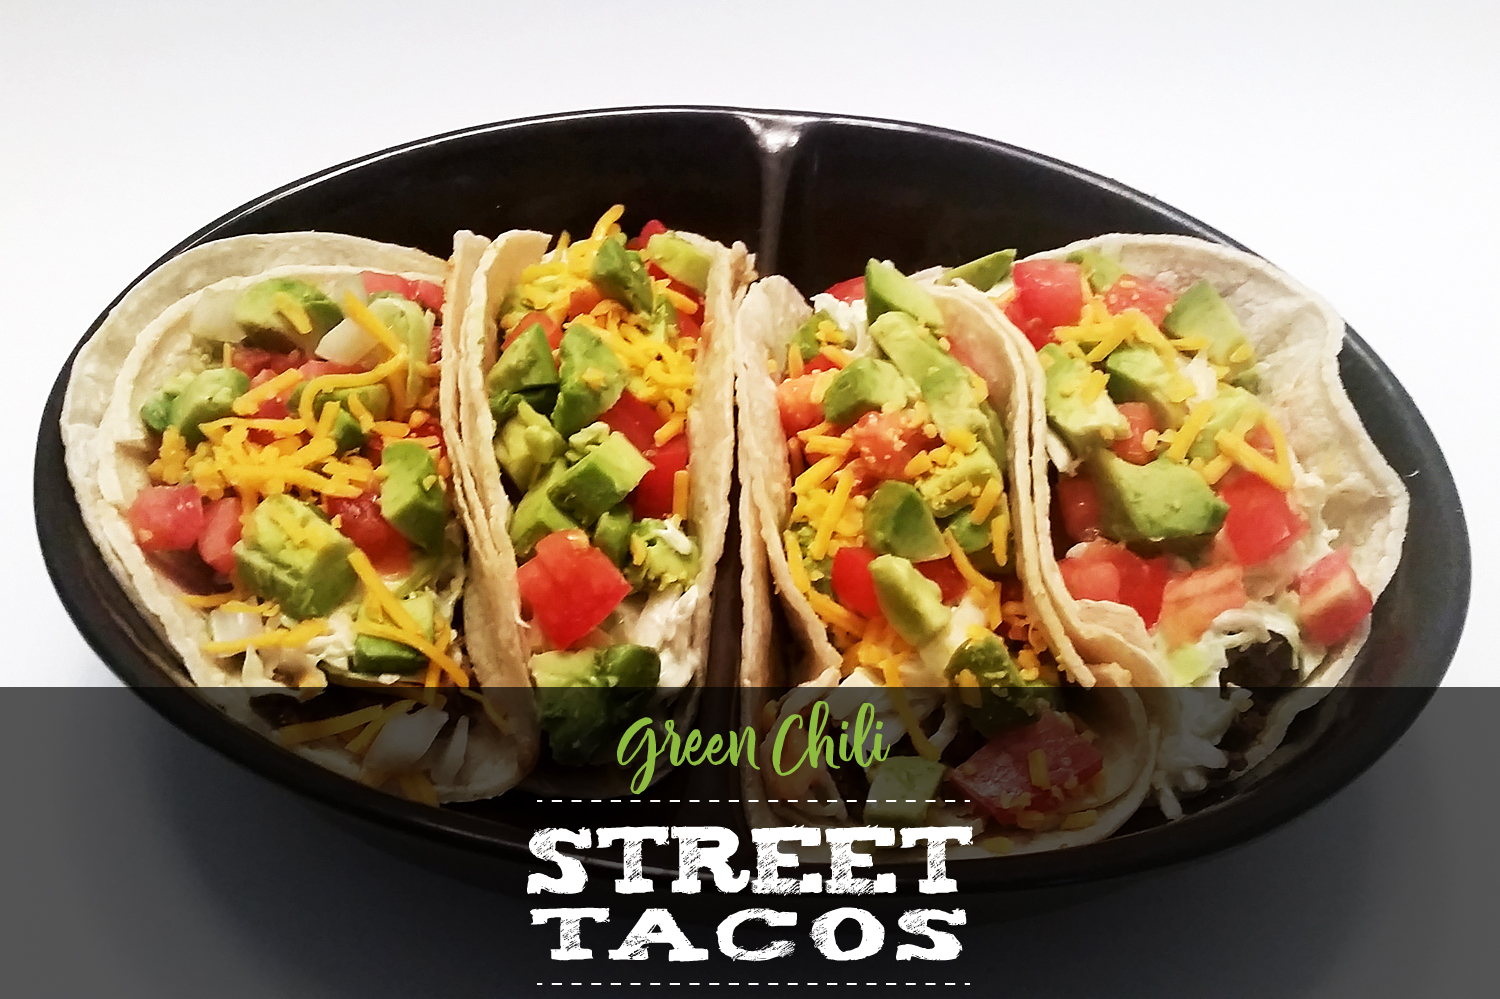 Green Chili Street Tacos